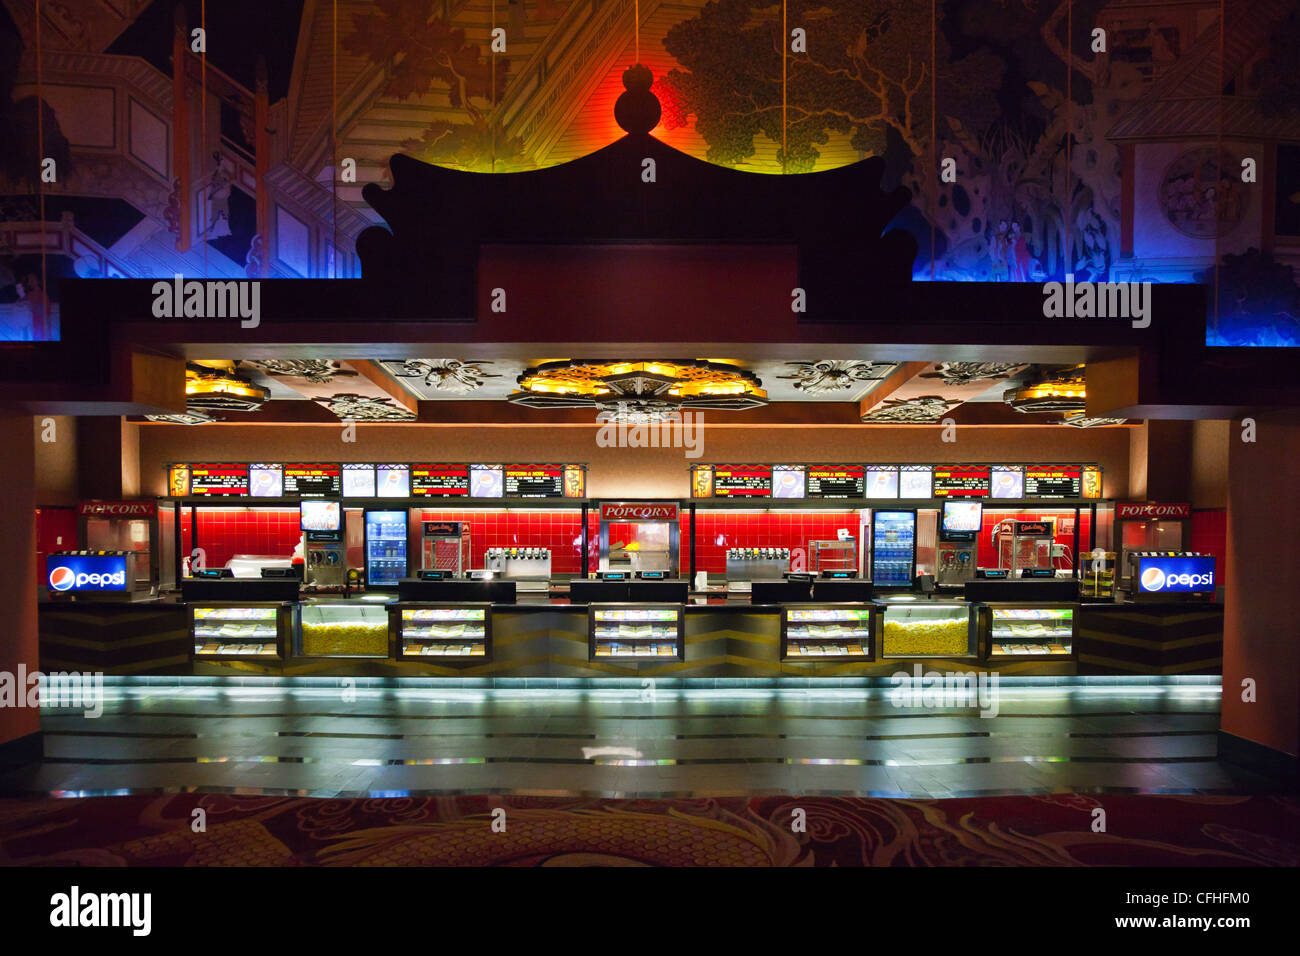 USA, California, Los Angeles, Hollywood, Grauman's Chinese Theater, the interior - Stock Image